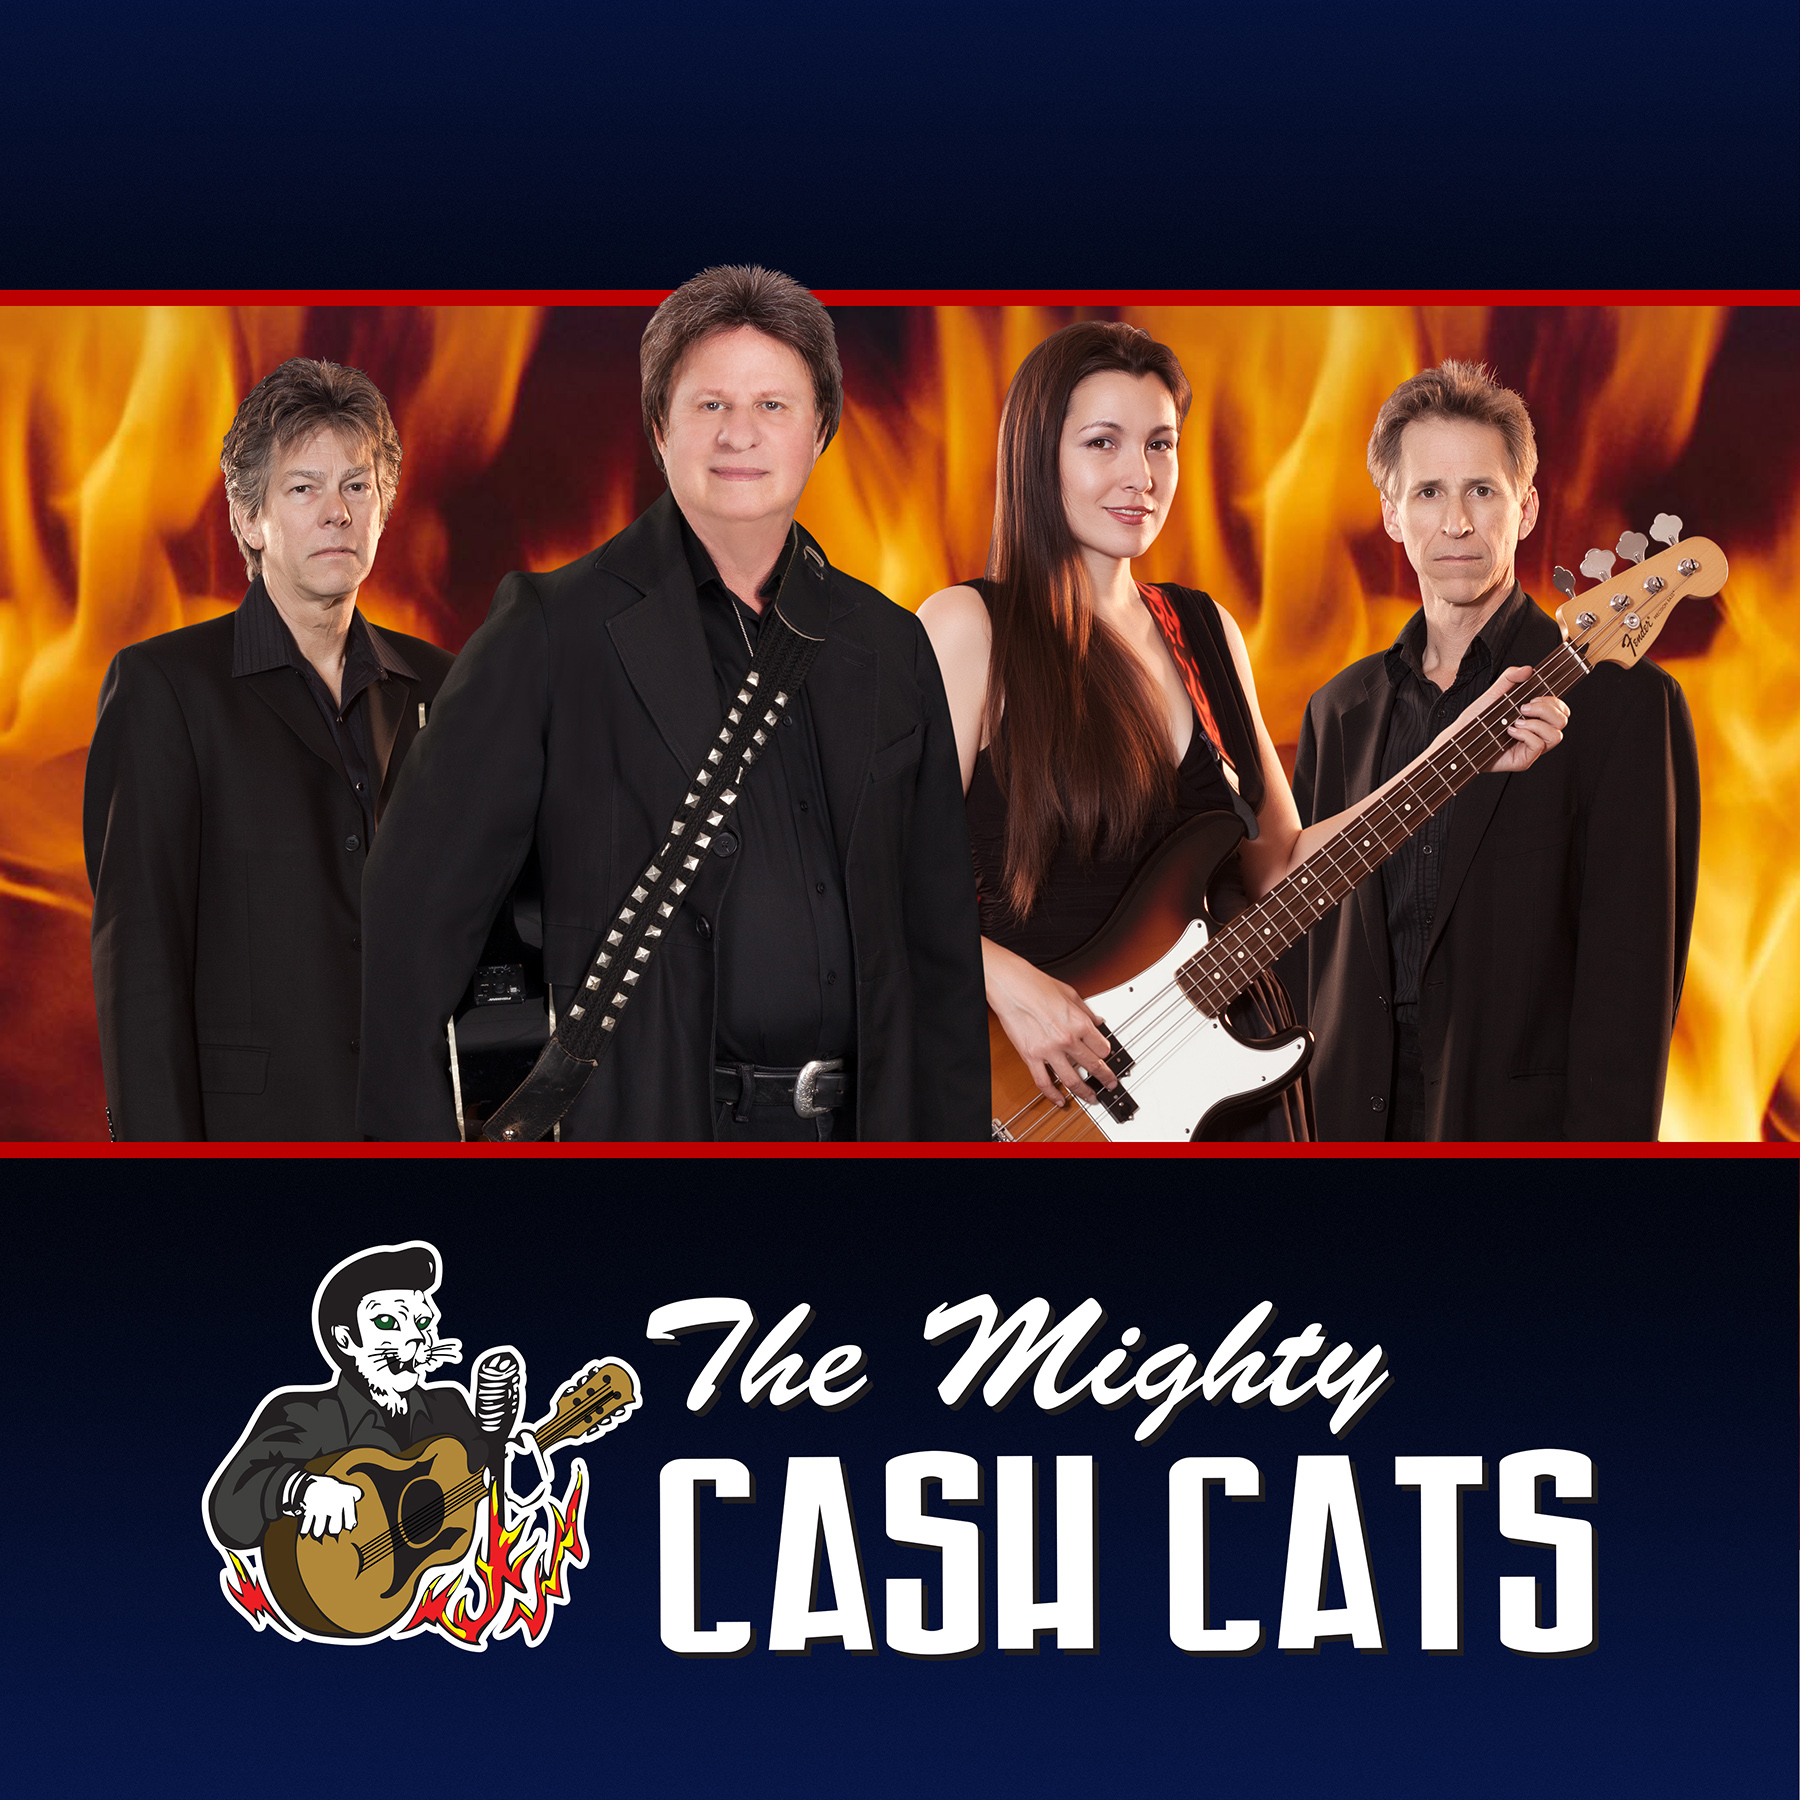 Ring-of-Fire-2017 Mighty cash cats larry